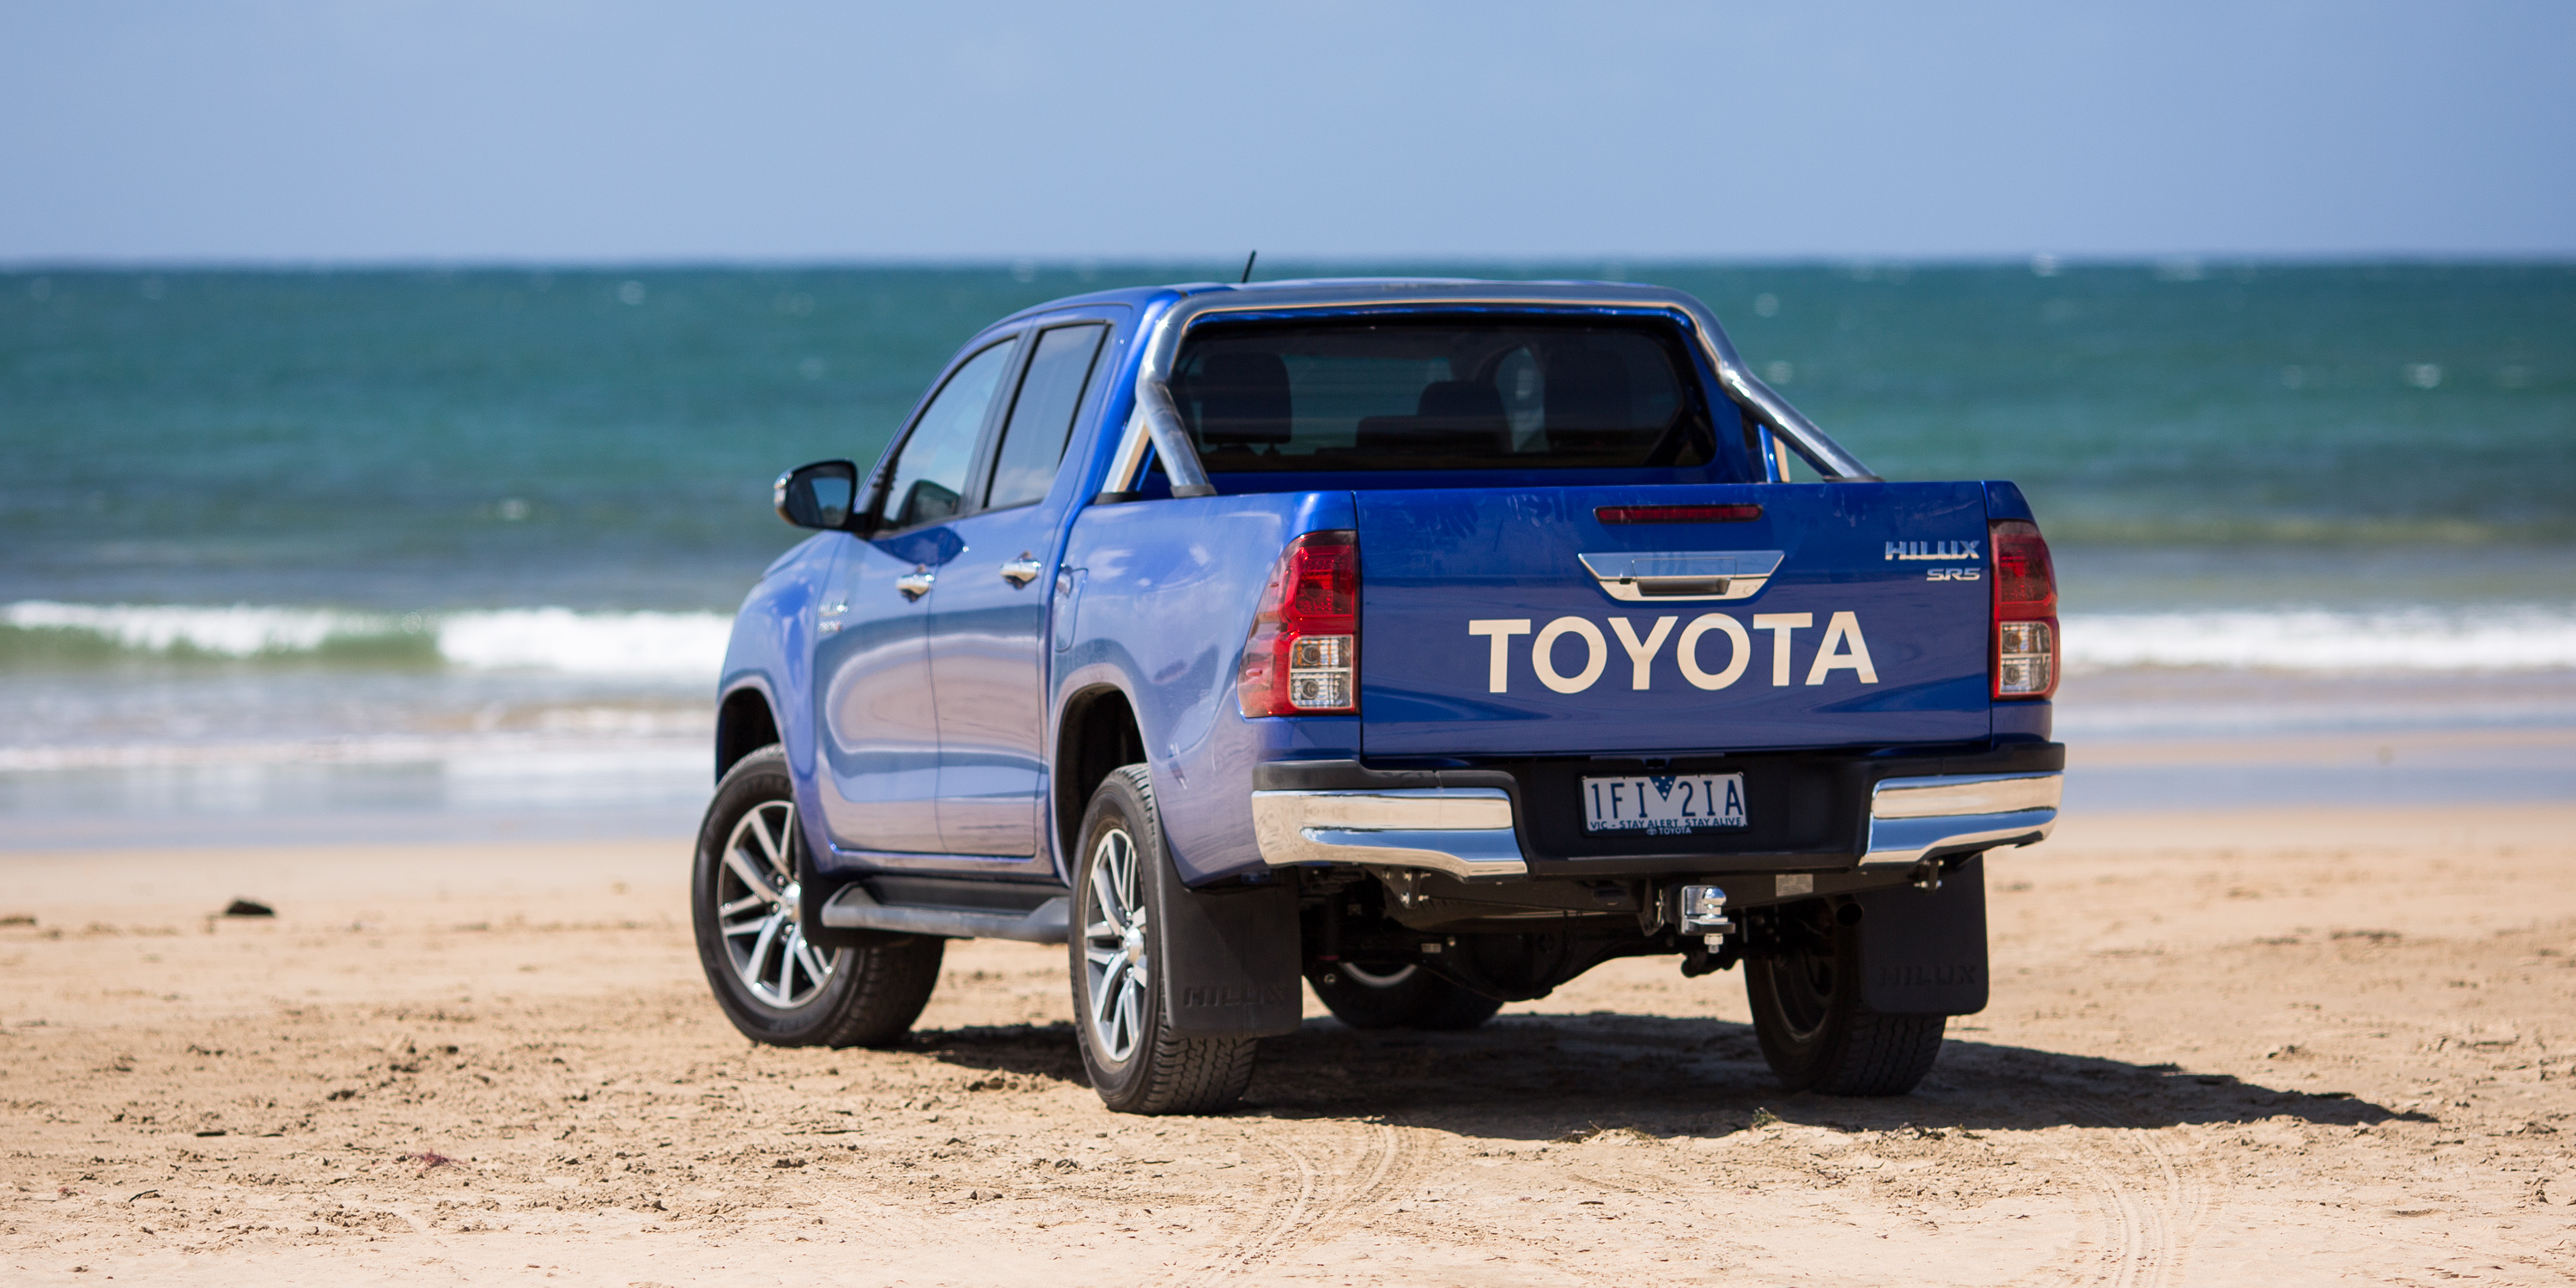 New Toyota Corolla >> 2016 Toyota HiLux SR5 Review - photos | CarAdvice